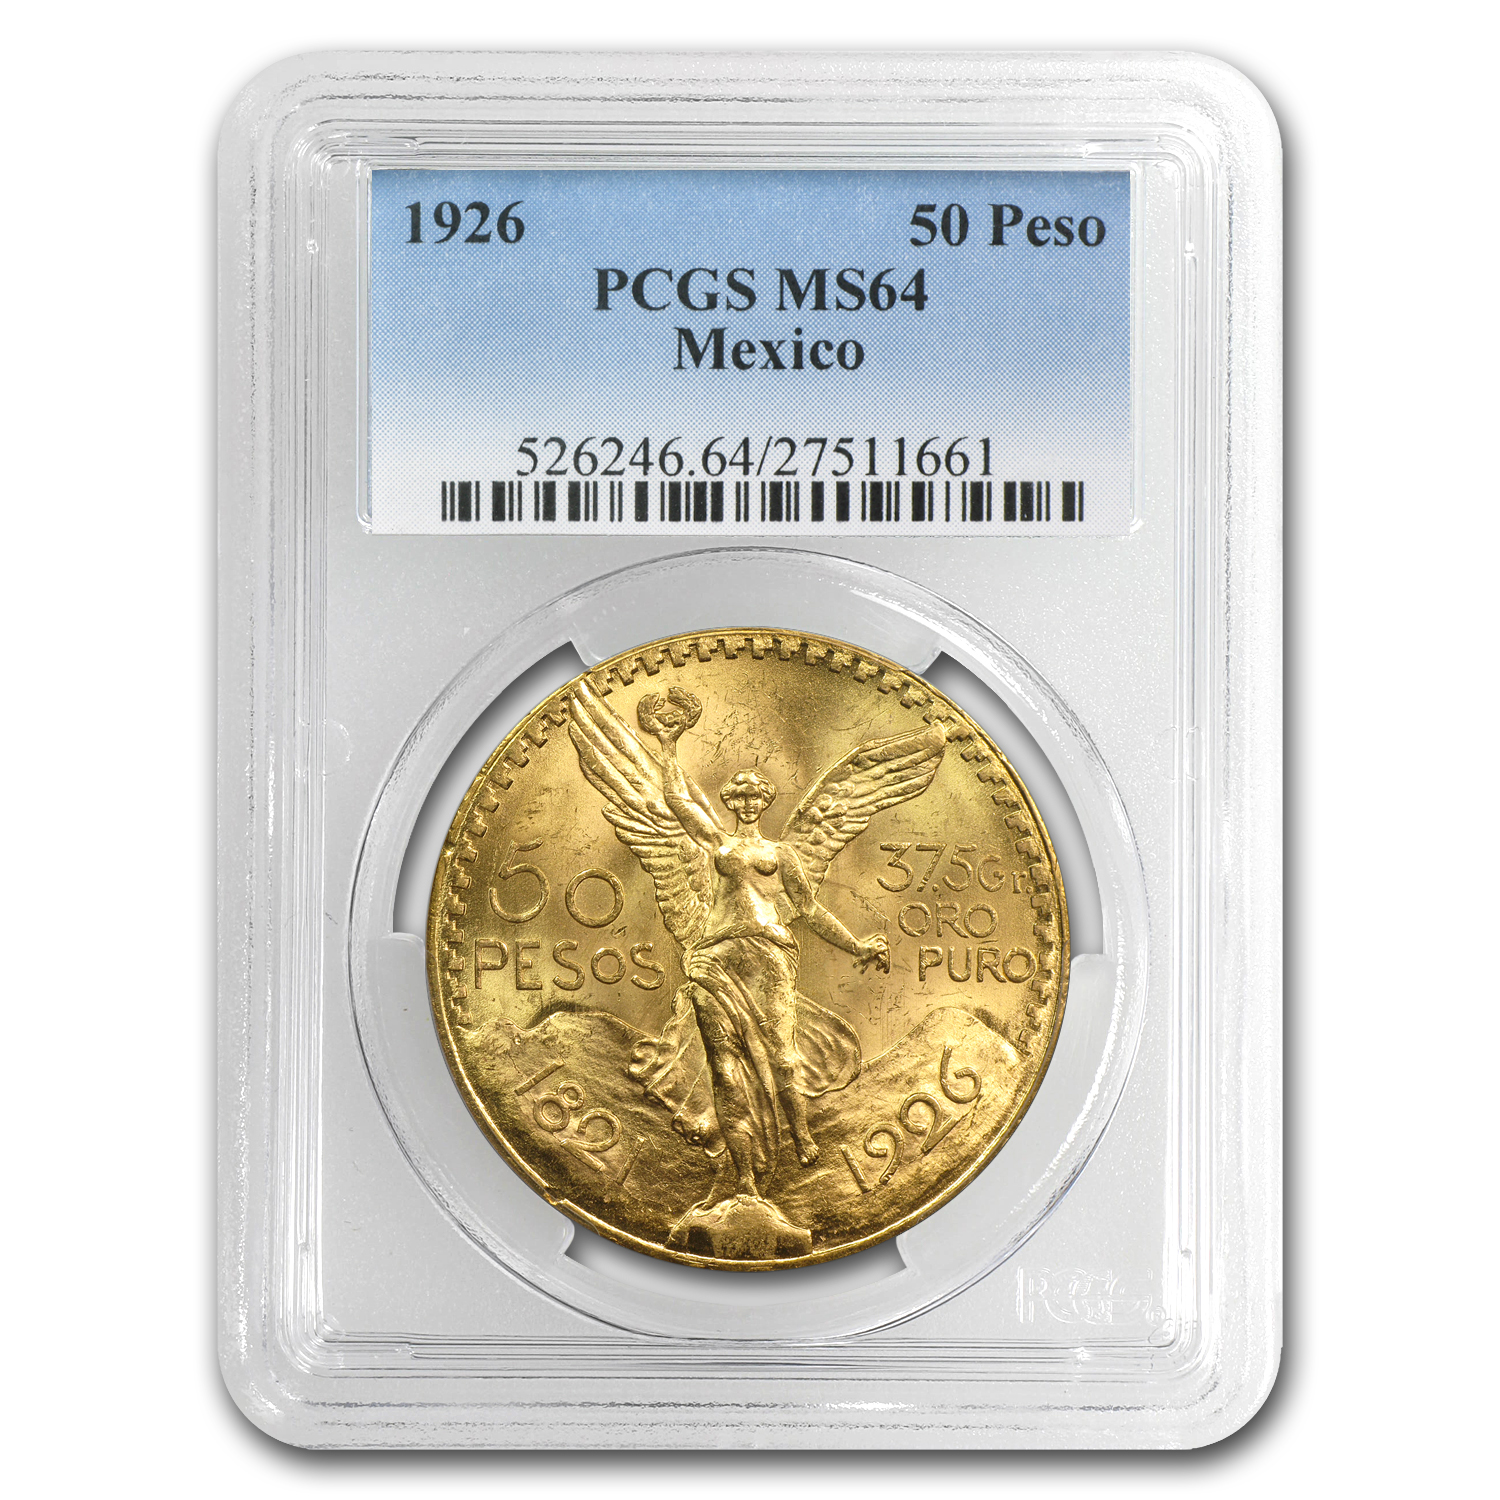 1926 Mexico 50 Pesos Gold MS-64 PCGS